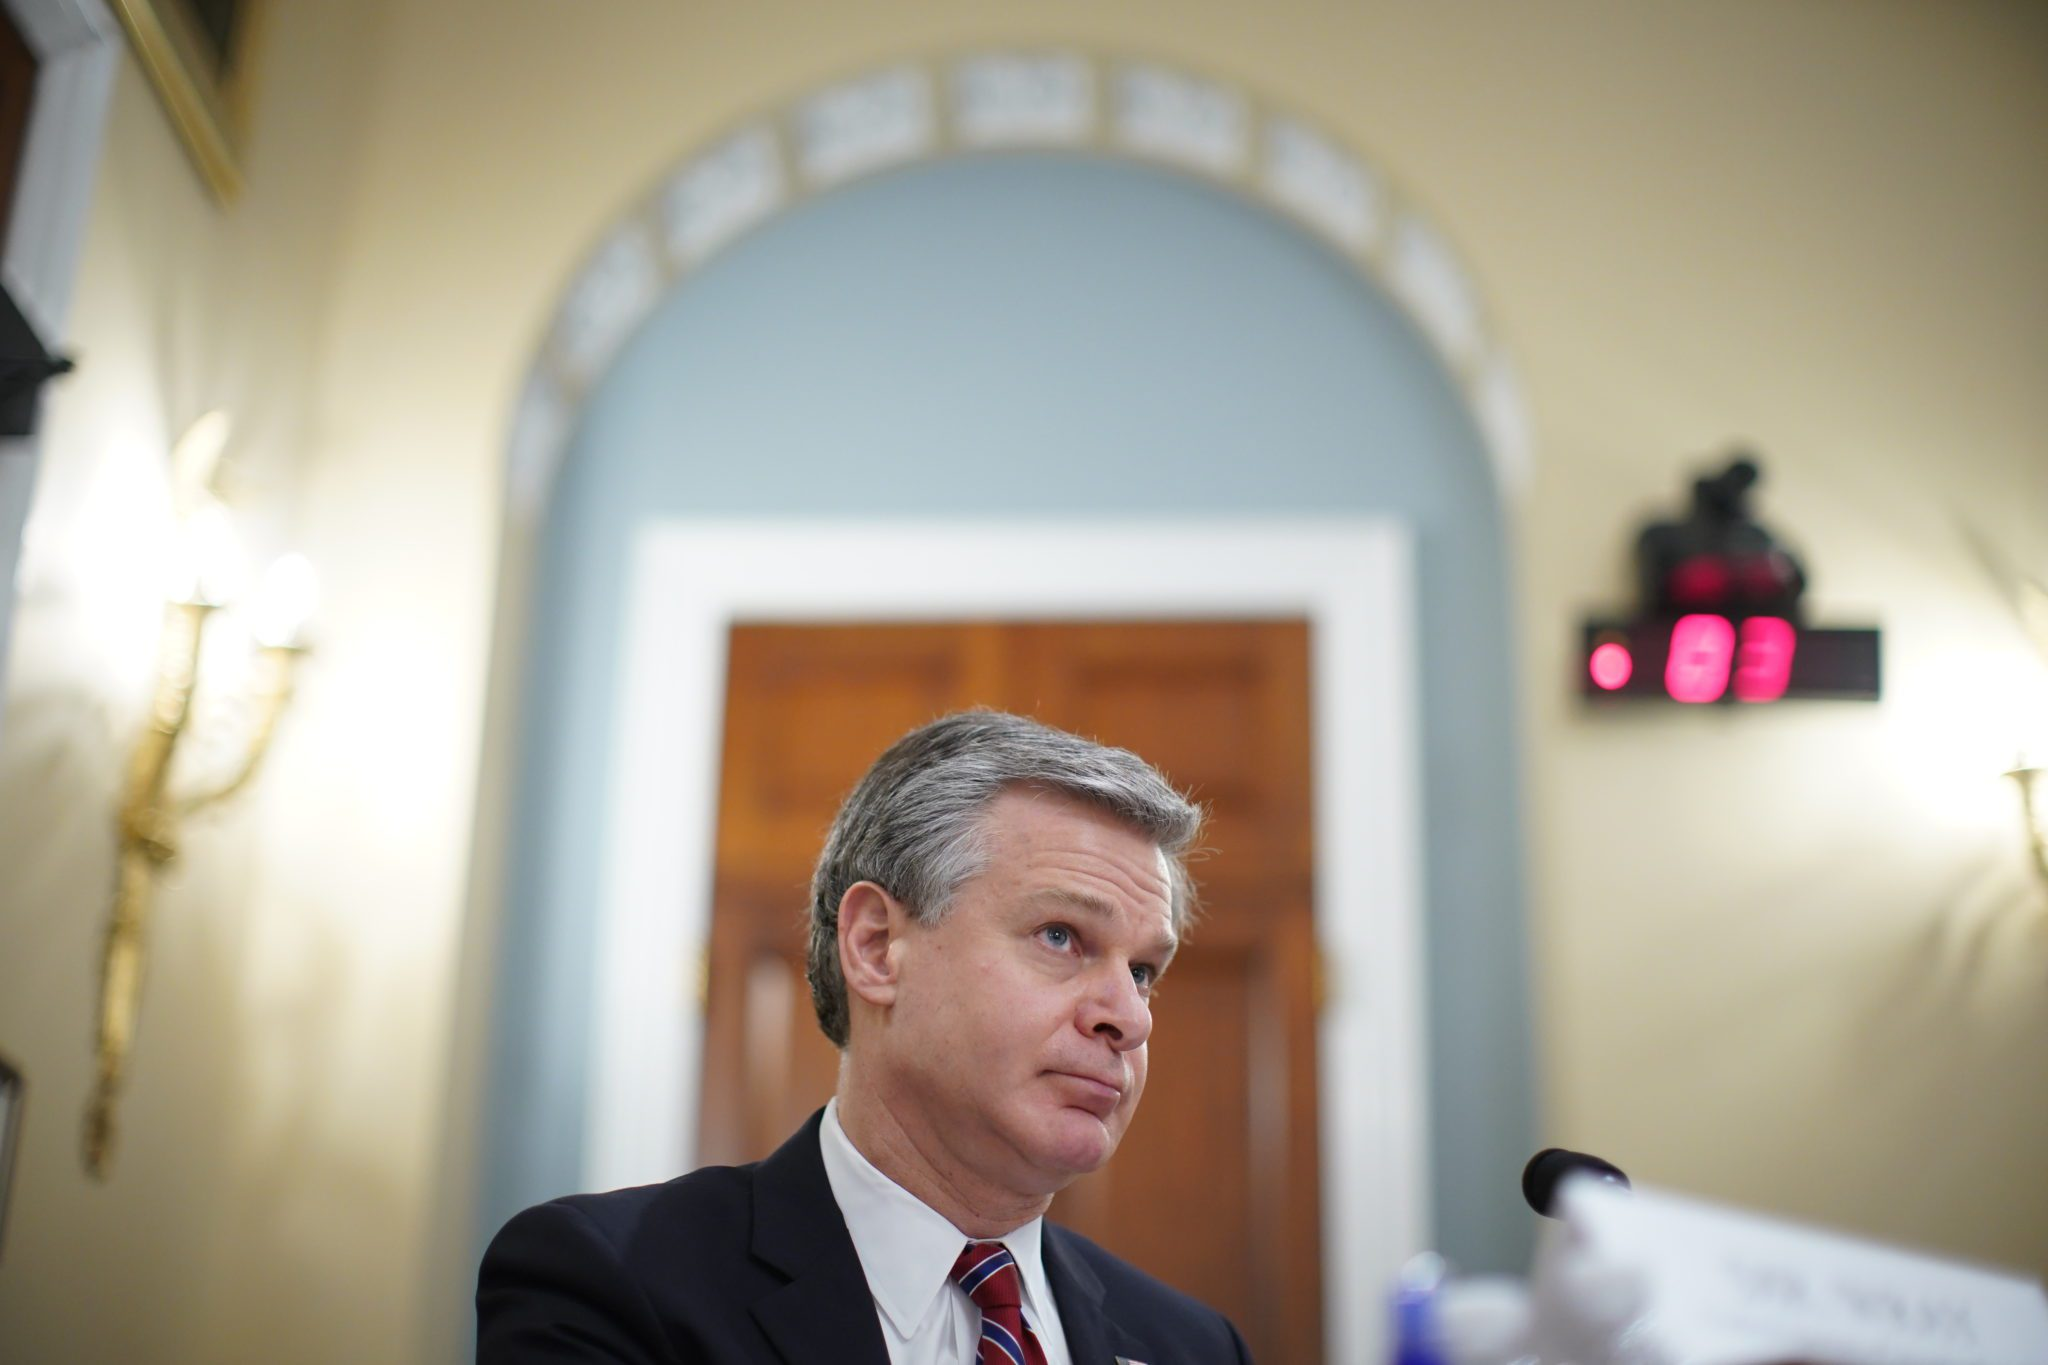 Christopher Wray, director of the Federal Bureau of Investigation (FBI), pauses during a House Intelligence Committee hearing in Washington, D.C., U.S., on Thursday, April 15, 2021. The hearing follows the release of an unclassified report by the intelligence community detailing the U.S. and its allies will face